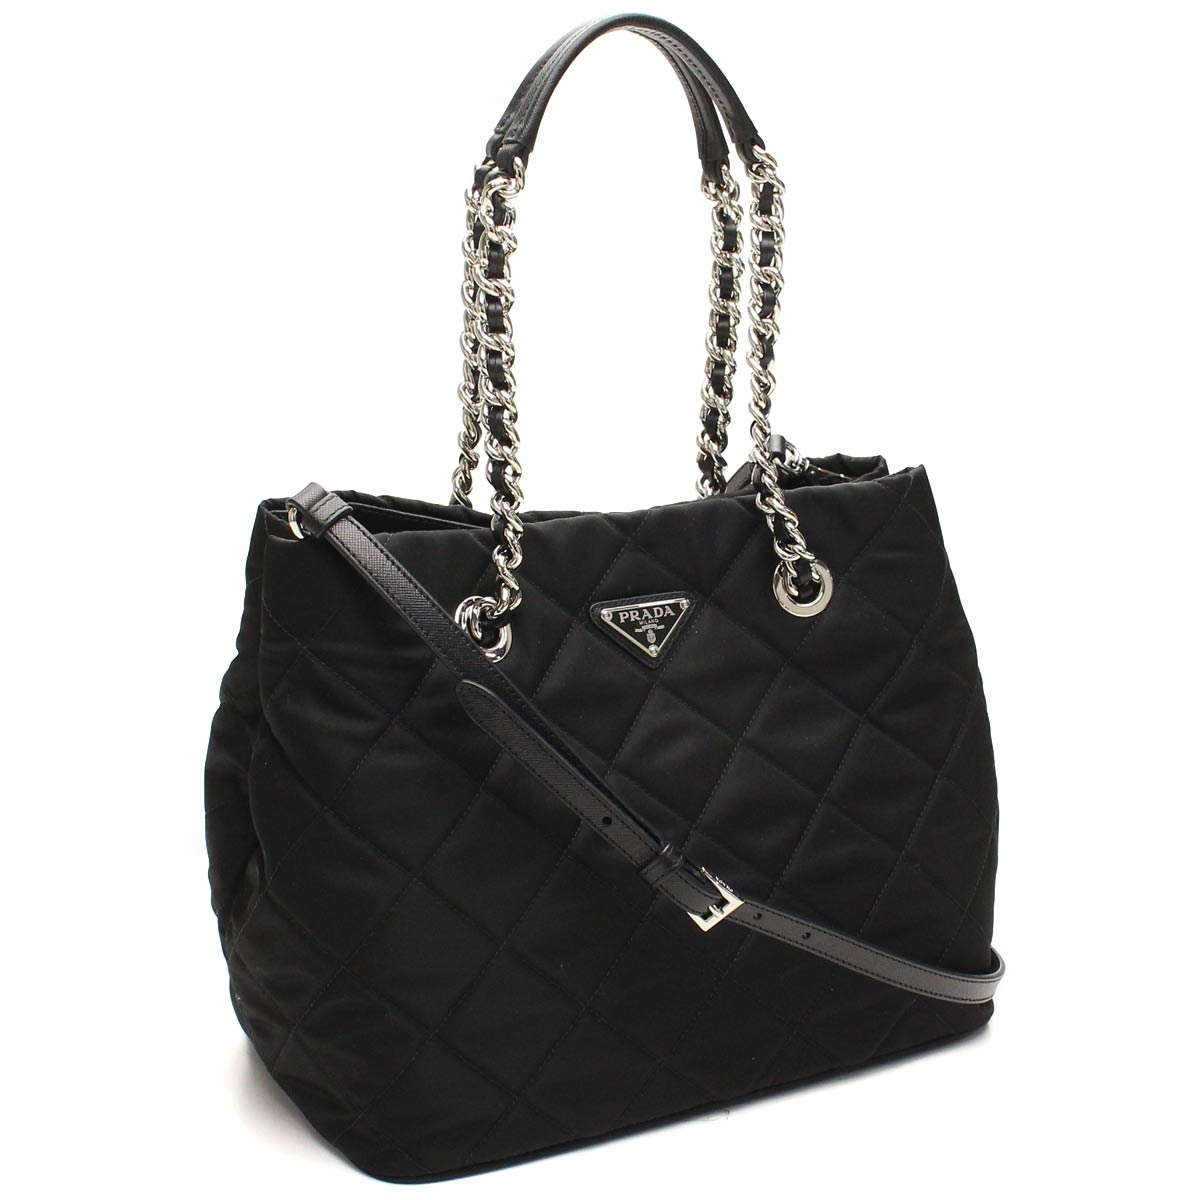 Bighit The total brand wholesale  Prada outlet PRADA (OUTLET) tote bag  BN2740-O-2AS3-F0002 NERO black( taxfree send by EMS authentic A brand new  item ) ... 4ccfa967dbb04